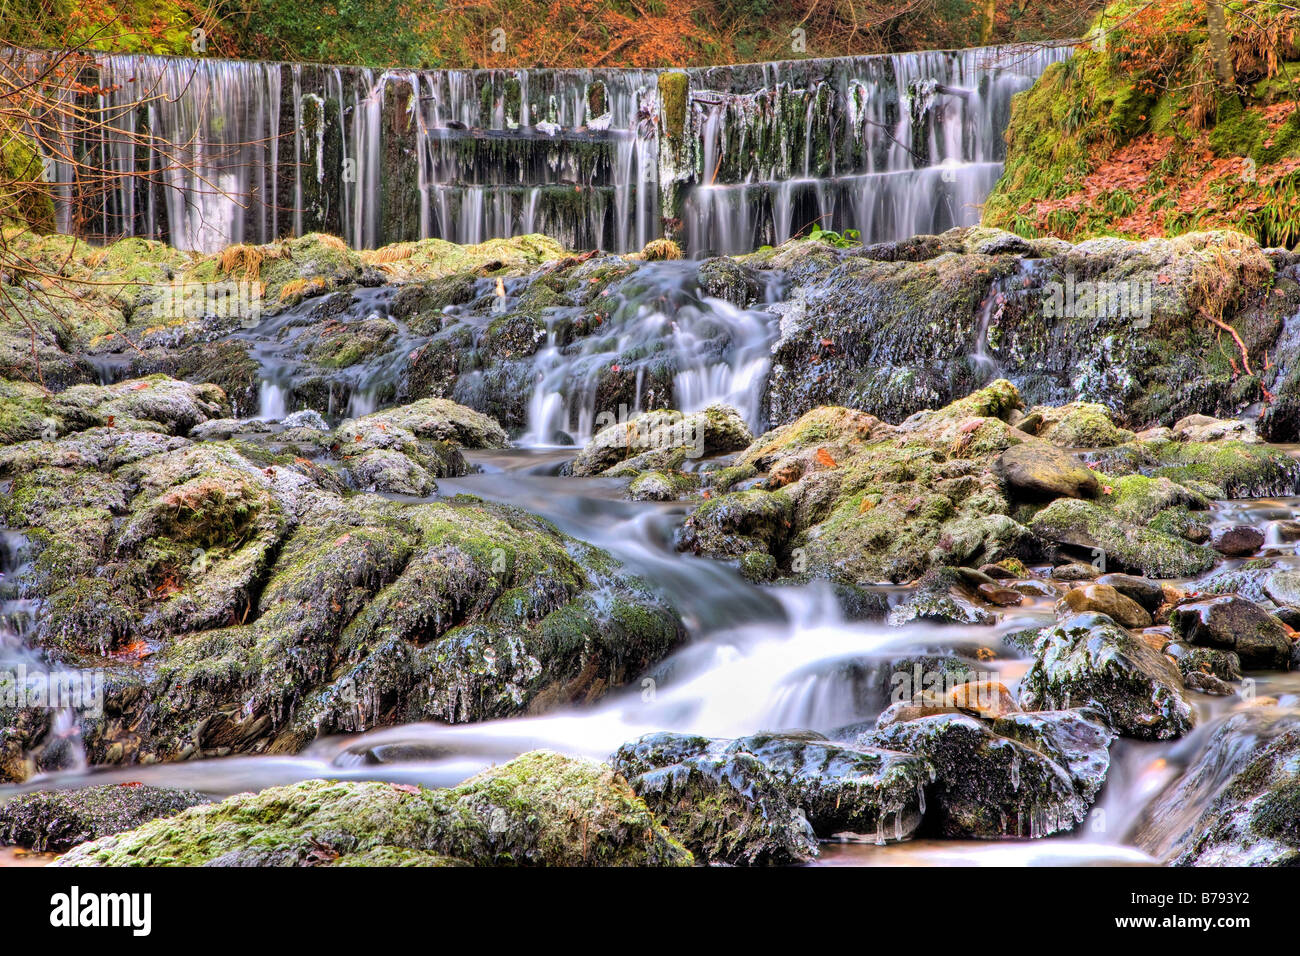 Stock Ghyl Waterfalls at Ambleside - Stock Image